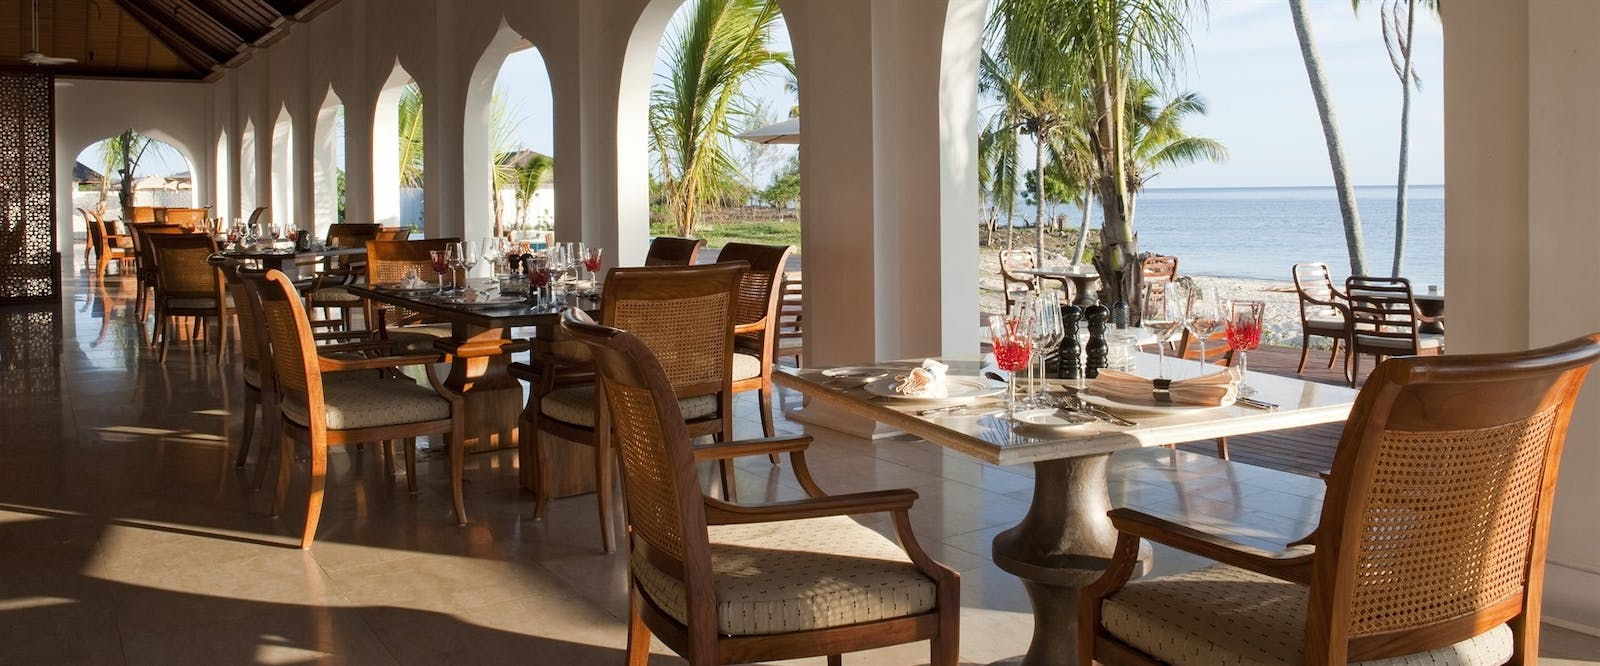 The Dining Room at The Residence, Zanzibar